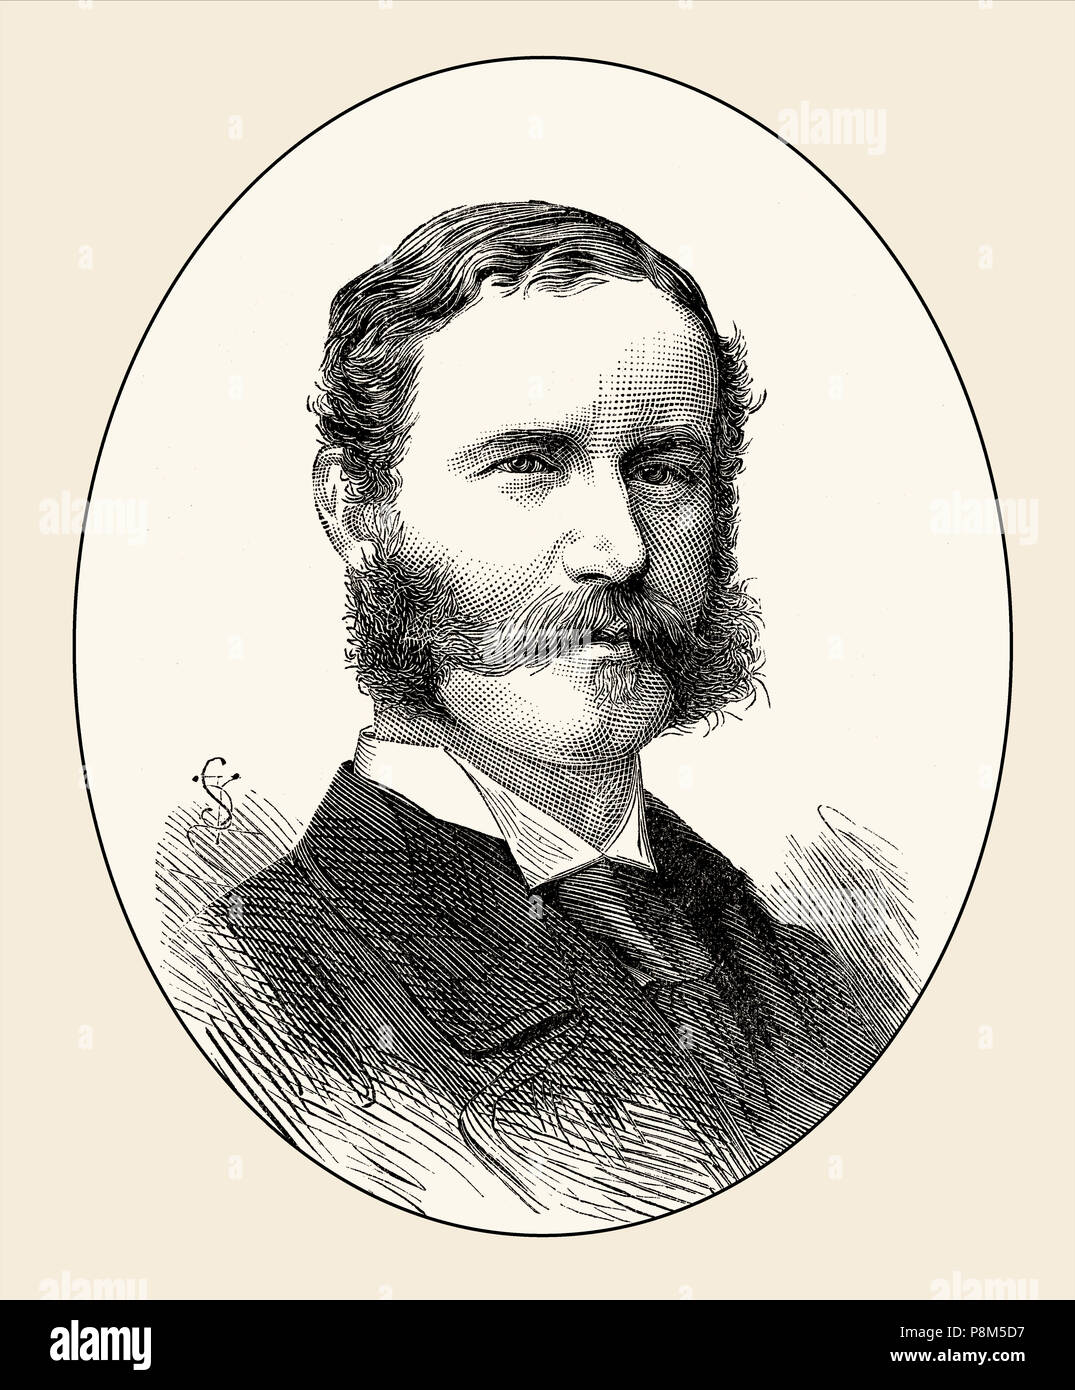 Lt Col. Philip Robert Anstruther,  a British army officer, killed at the Battle of Bronkhorstspruit, Transvaal on 20 December 1880, From British Battl - Stock Image